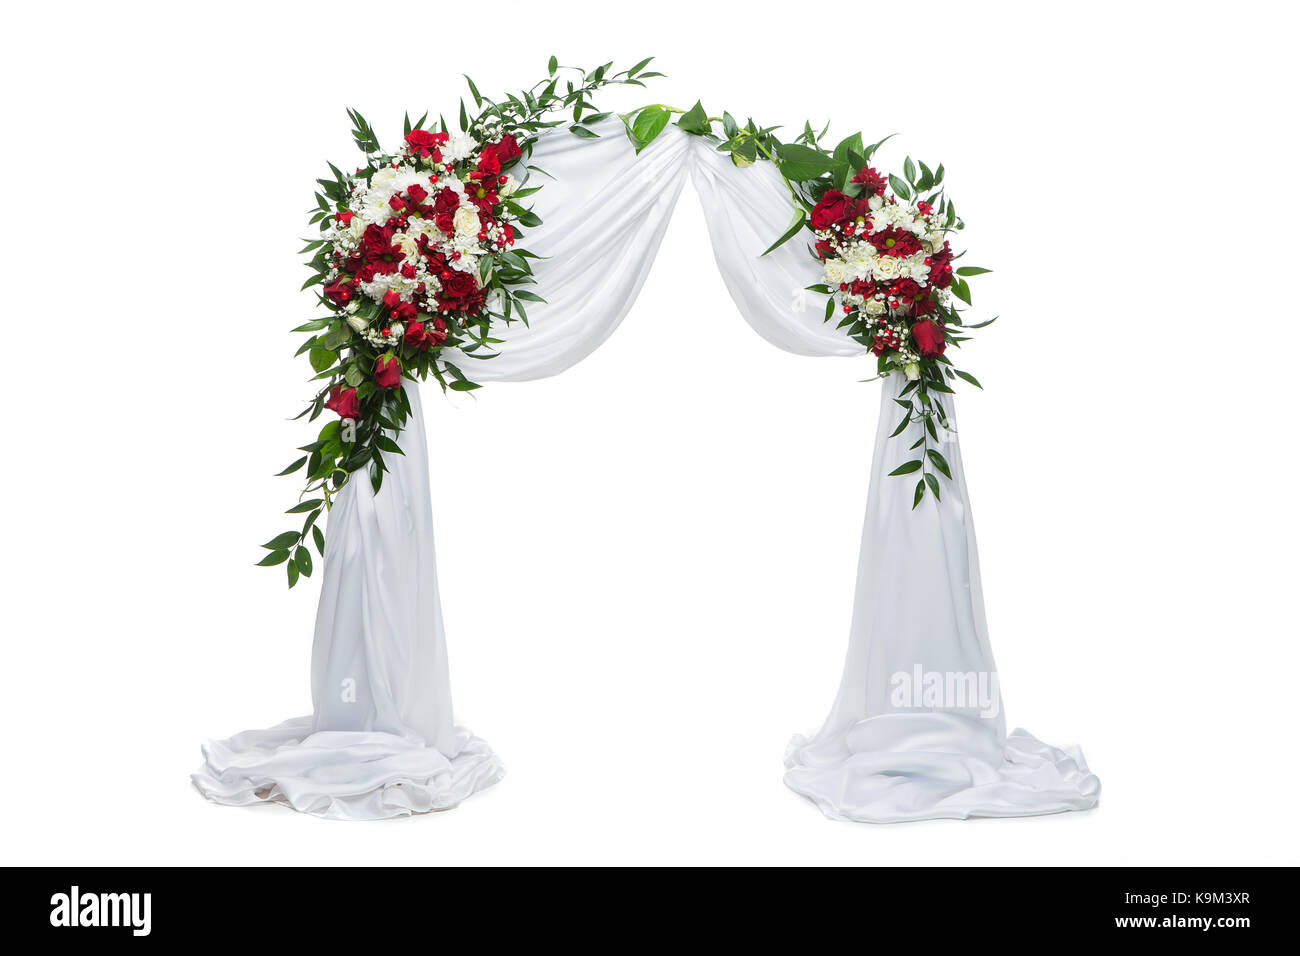 Beautiful Roses Flower Arch Wedding Decoration With Red And White